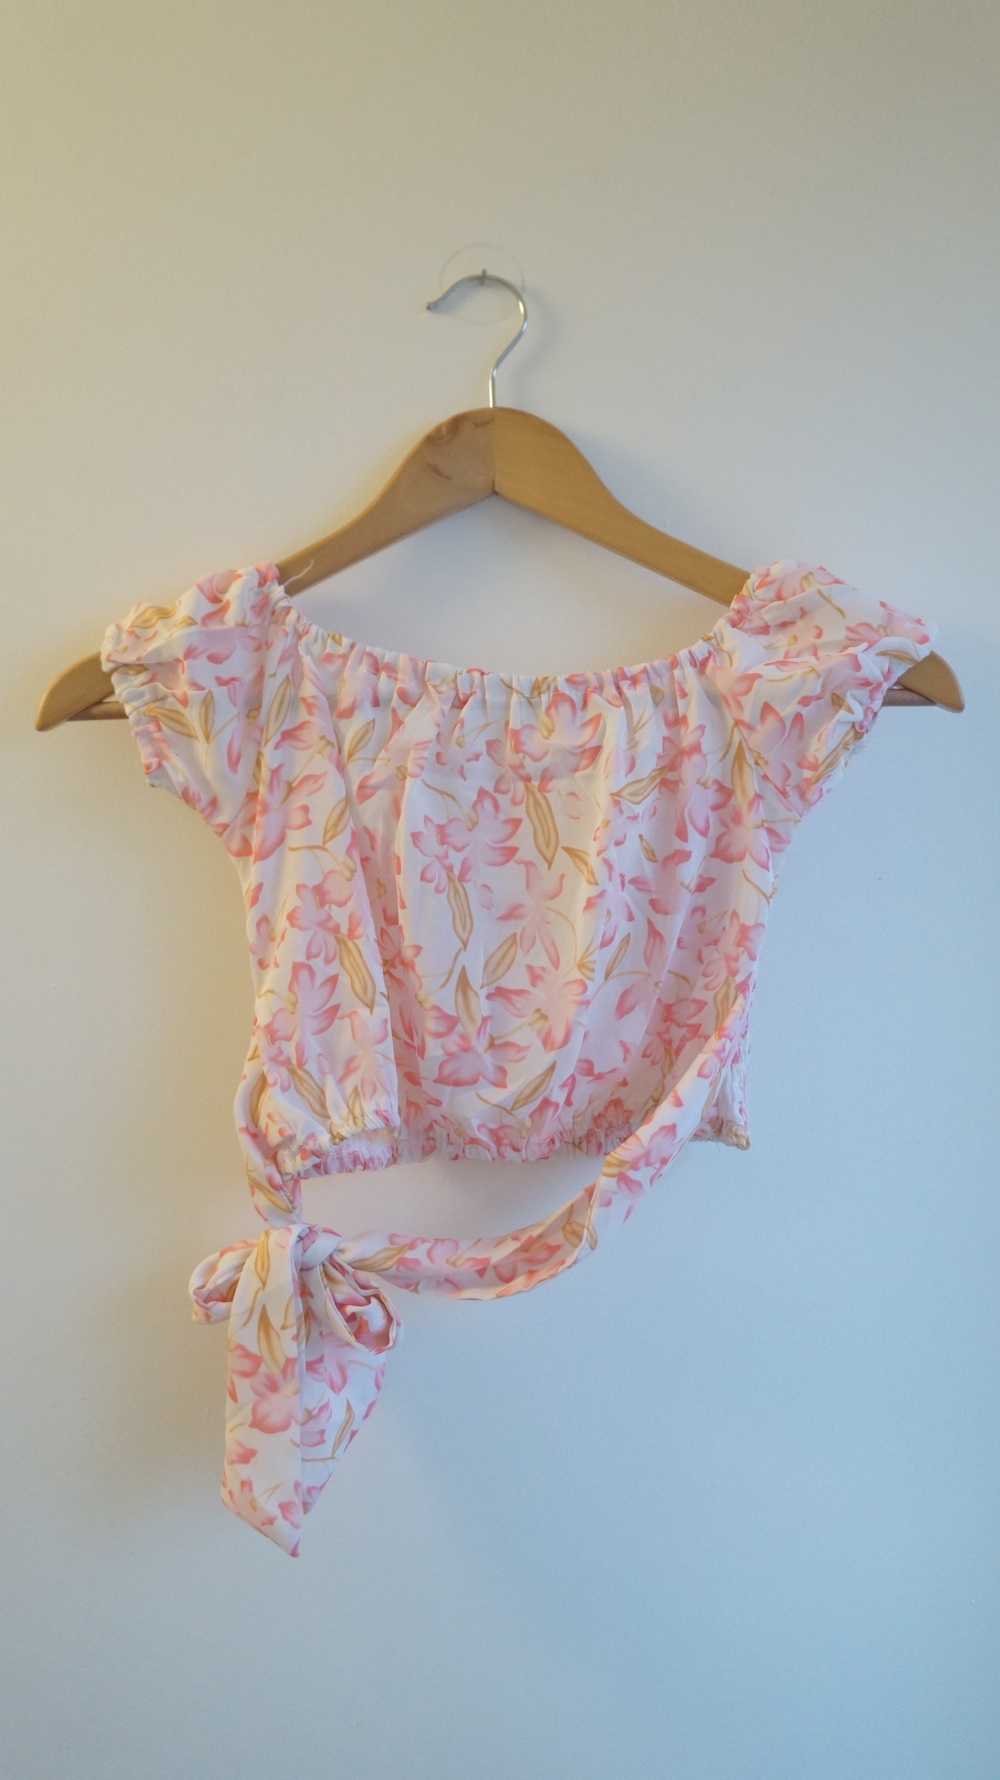 29b24de4a727 Catwalk White Pink Cropped Floral Flower Top with Tie Knot · Marla's ...